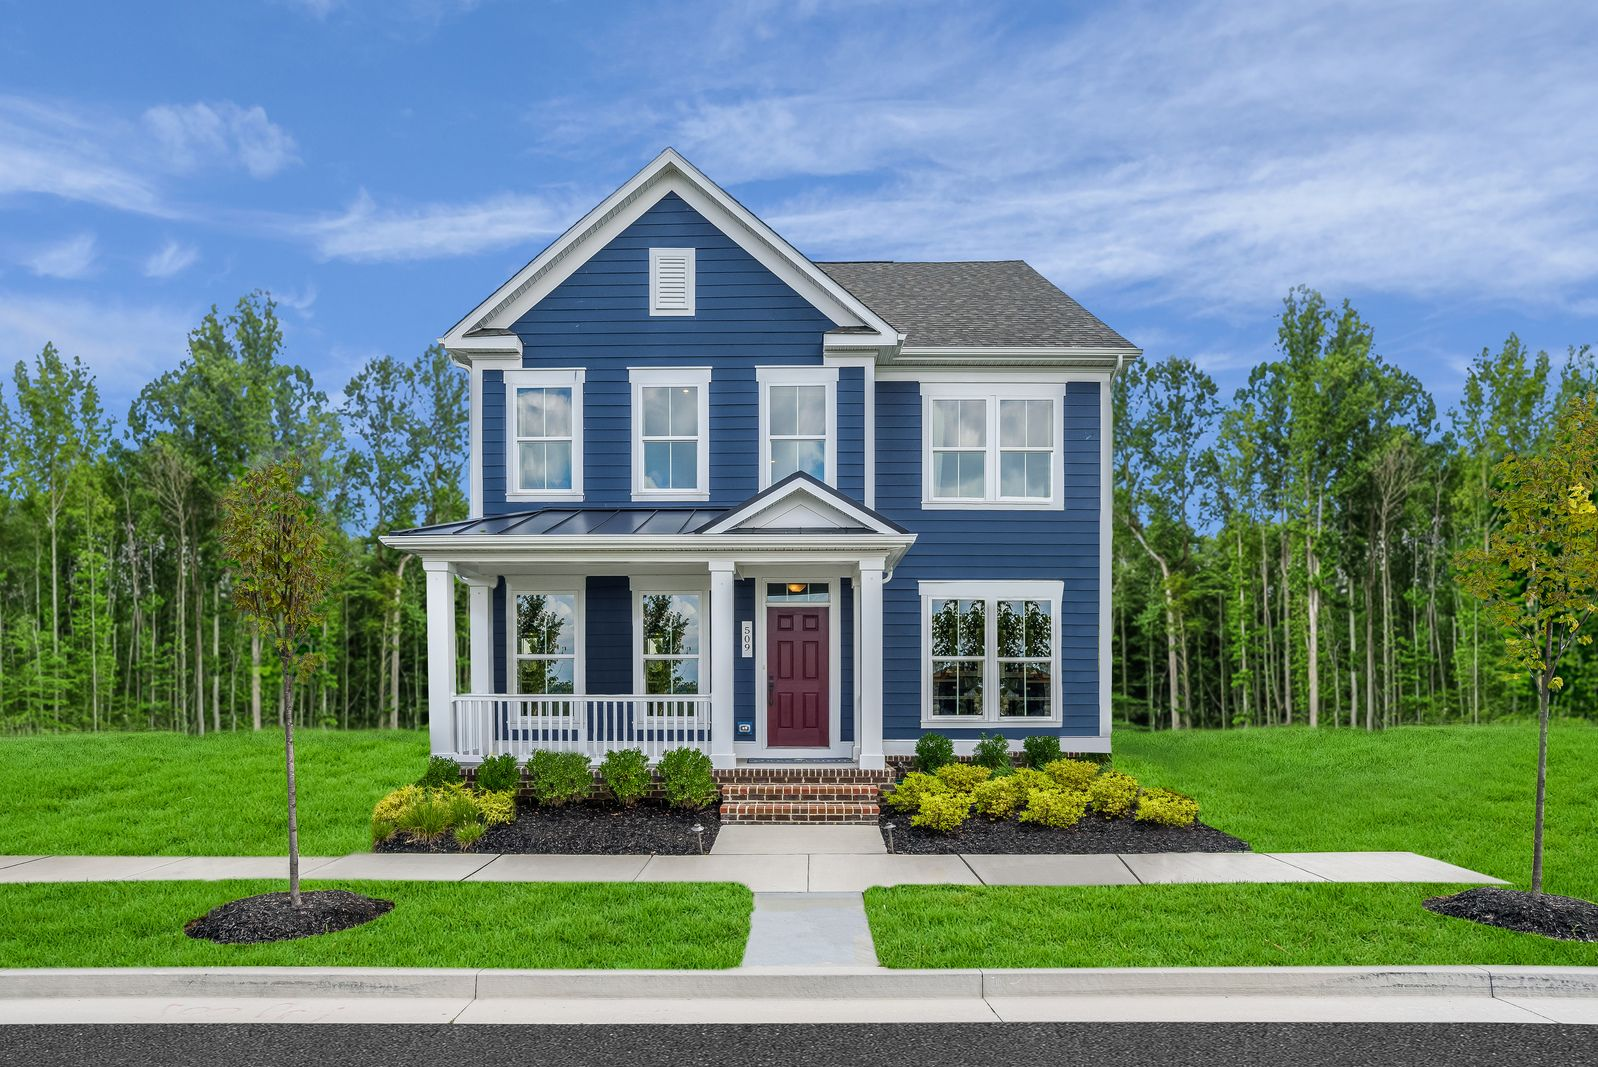 Grand Opening at the Reserve at Culpepper Landing!:These charming single-family homes offer modern features, open floorplans & resort-style amenities, from the upper $300s.Schedule your grand opening visit today!